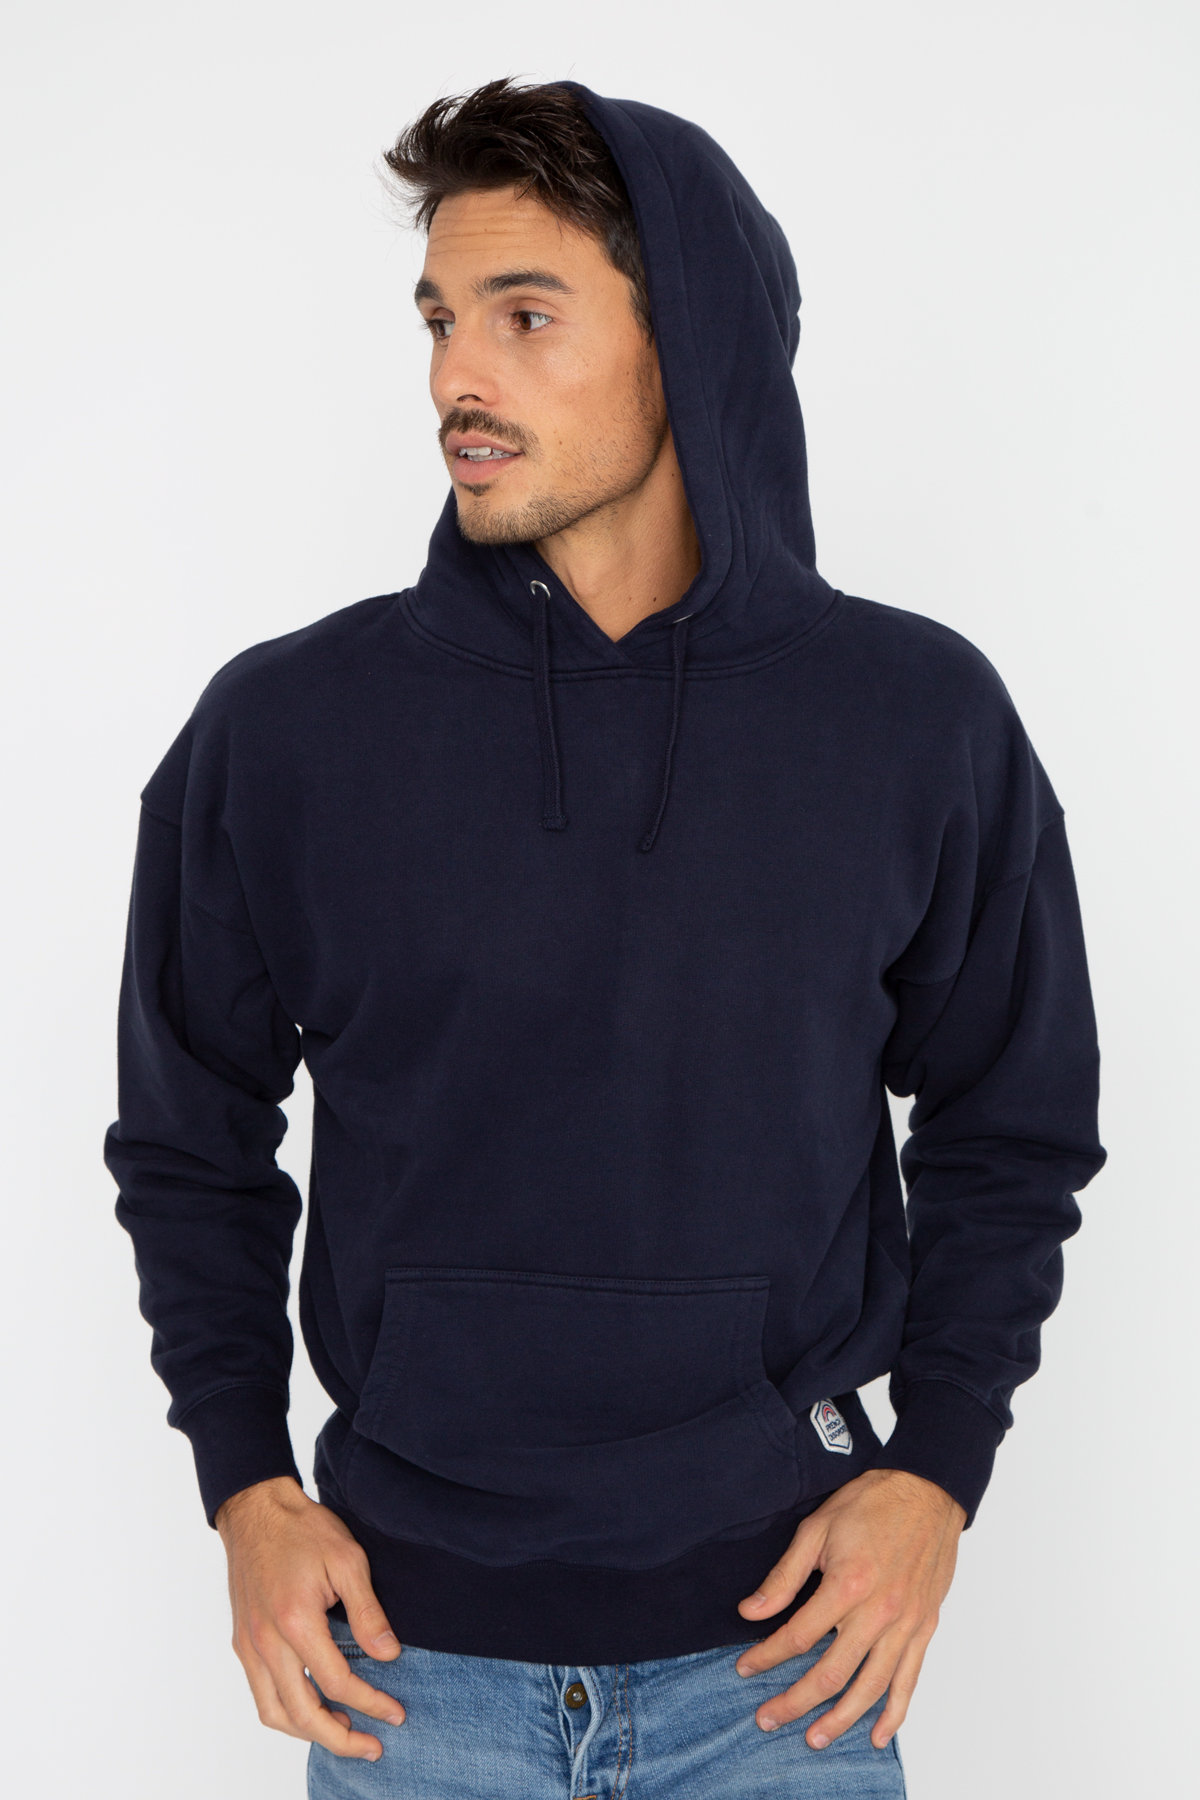 Photo de SWEAT À CAPUCHE Hoodie NUDE chez French Disorder